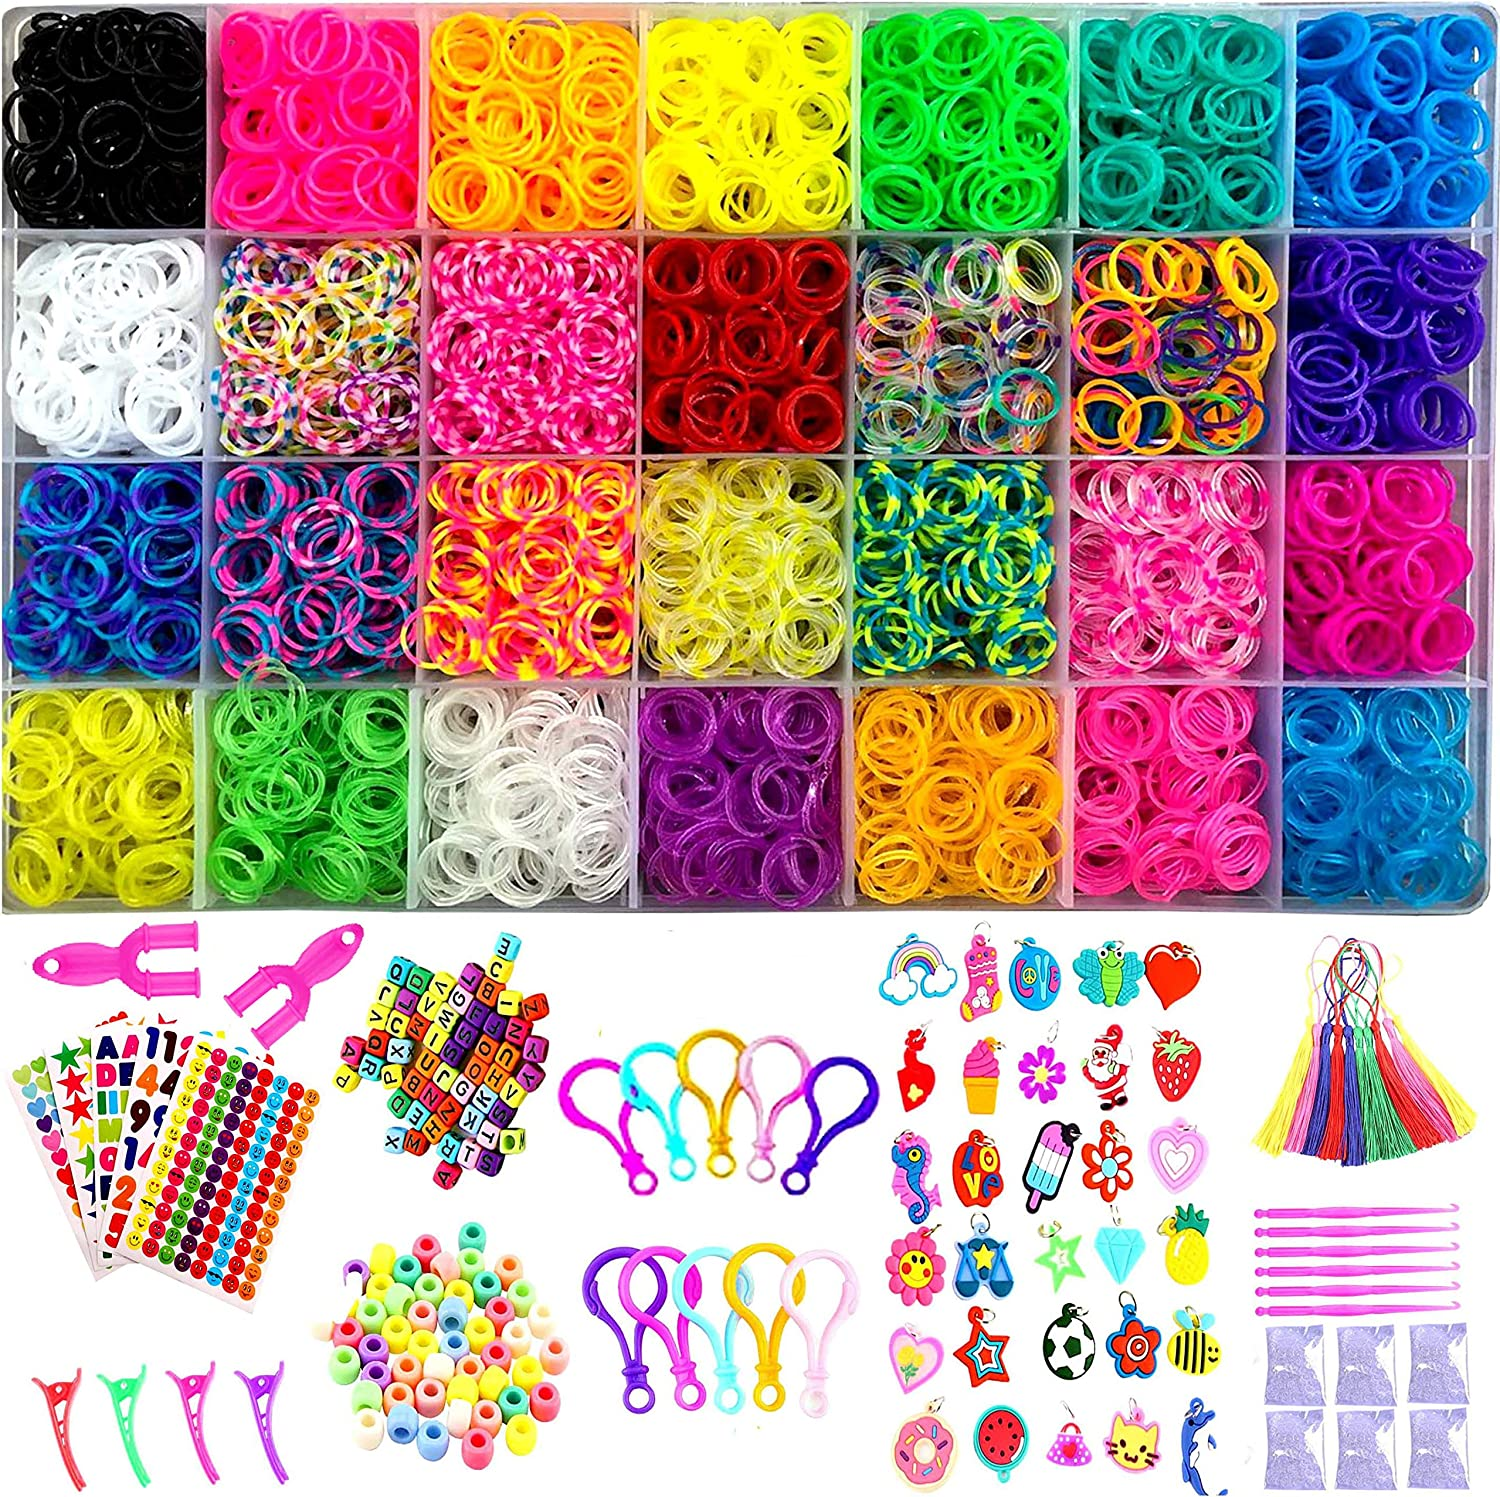 5000+ Rainbow Loom Bands Rainbow Rubber Bands for Bracelet Making Kit DIY Band,DIY Arts Crafts for Christmas Birthday Gift 5000+ pcs